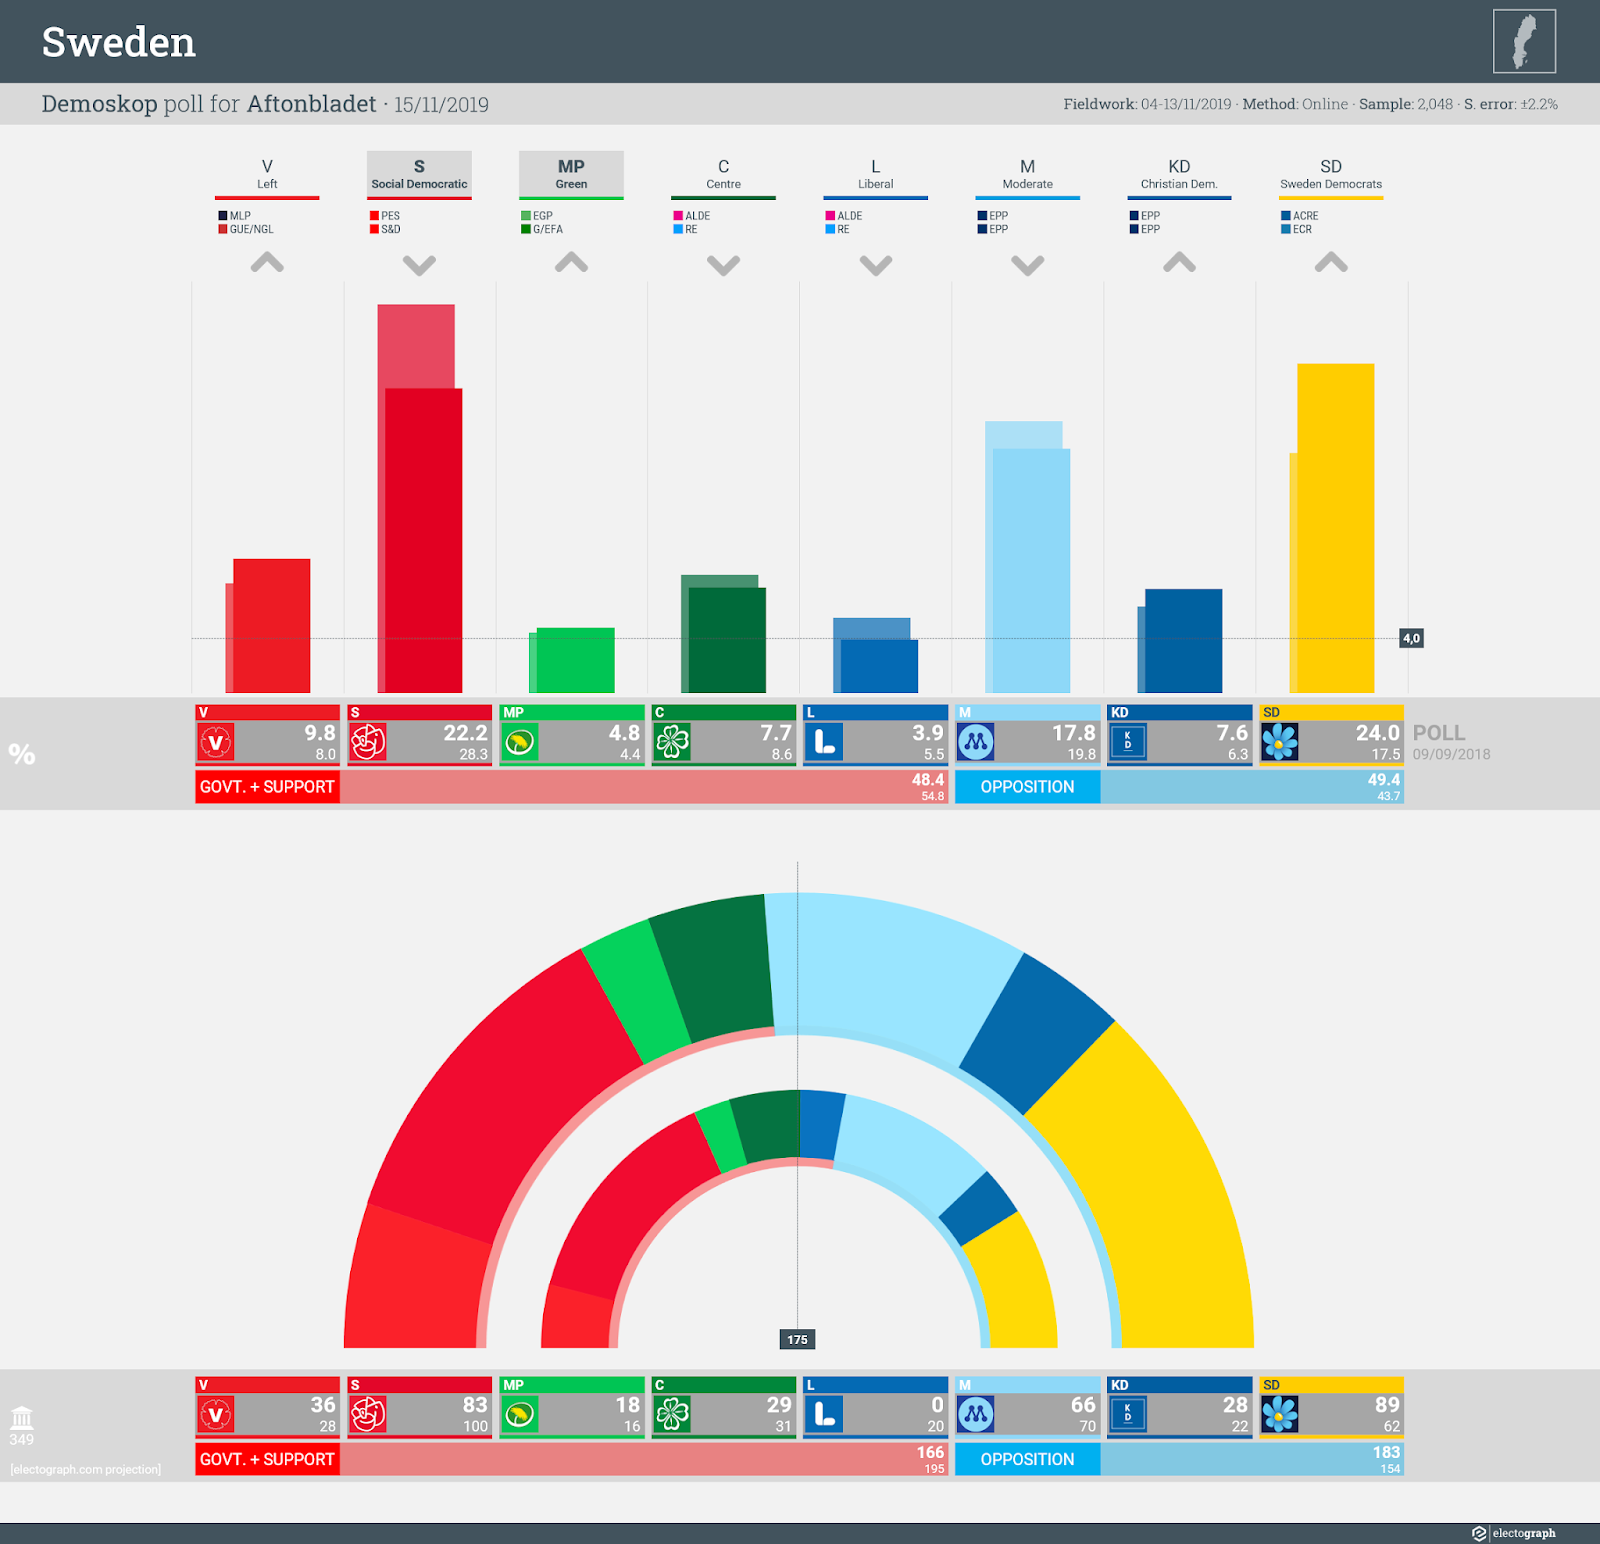 SWEDEN: Demoskop poll chart for Aftonbladet, 15 November 2019